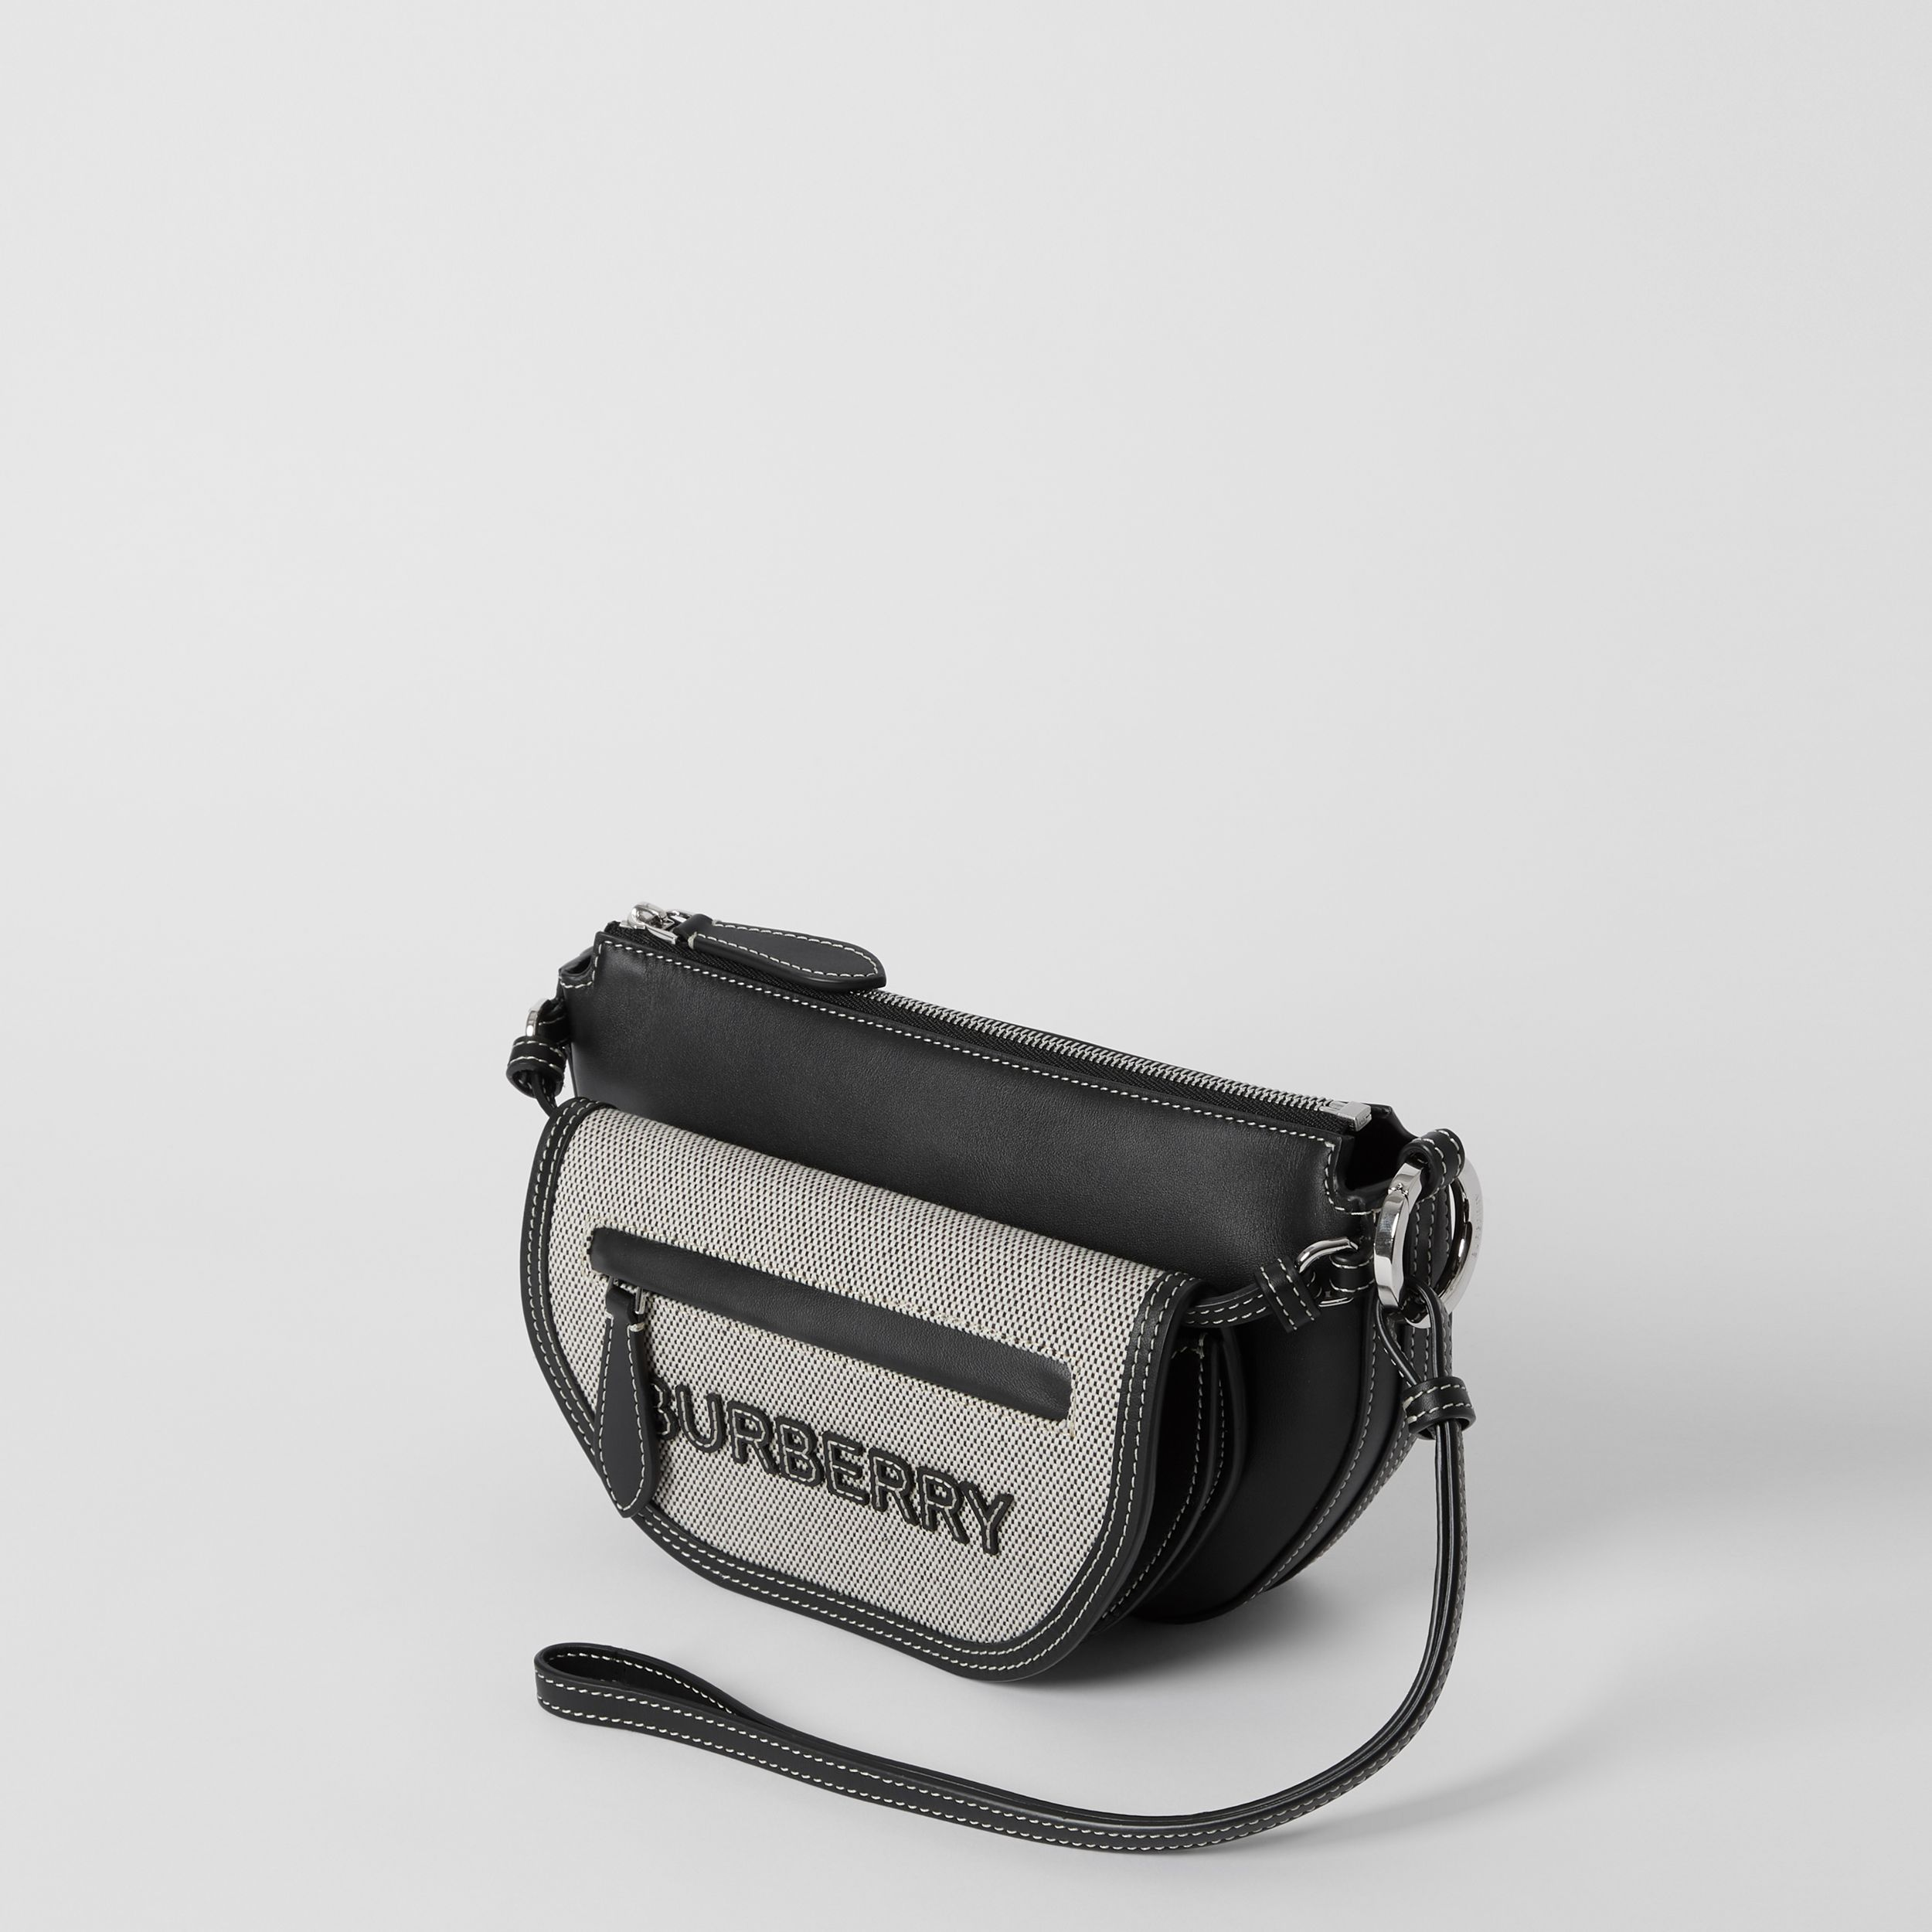 Mini Cotton Canvas and Leather Double Olympia Bag in Black - Women | Burberry - 3